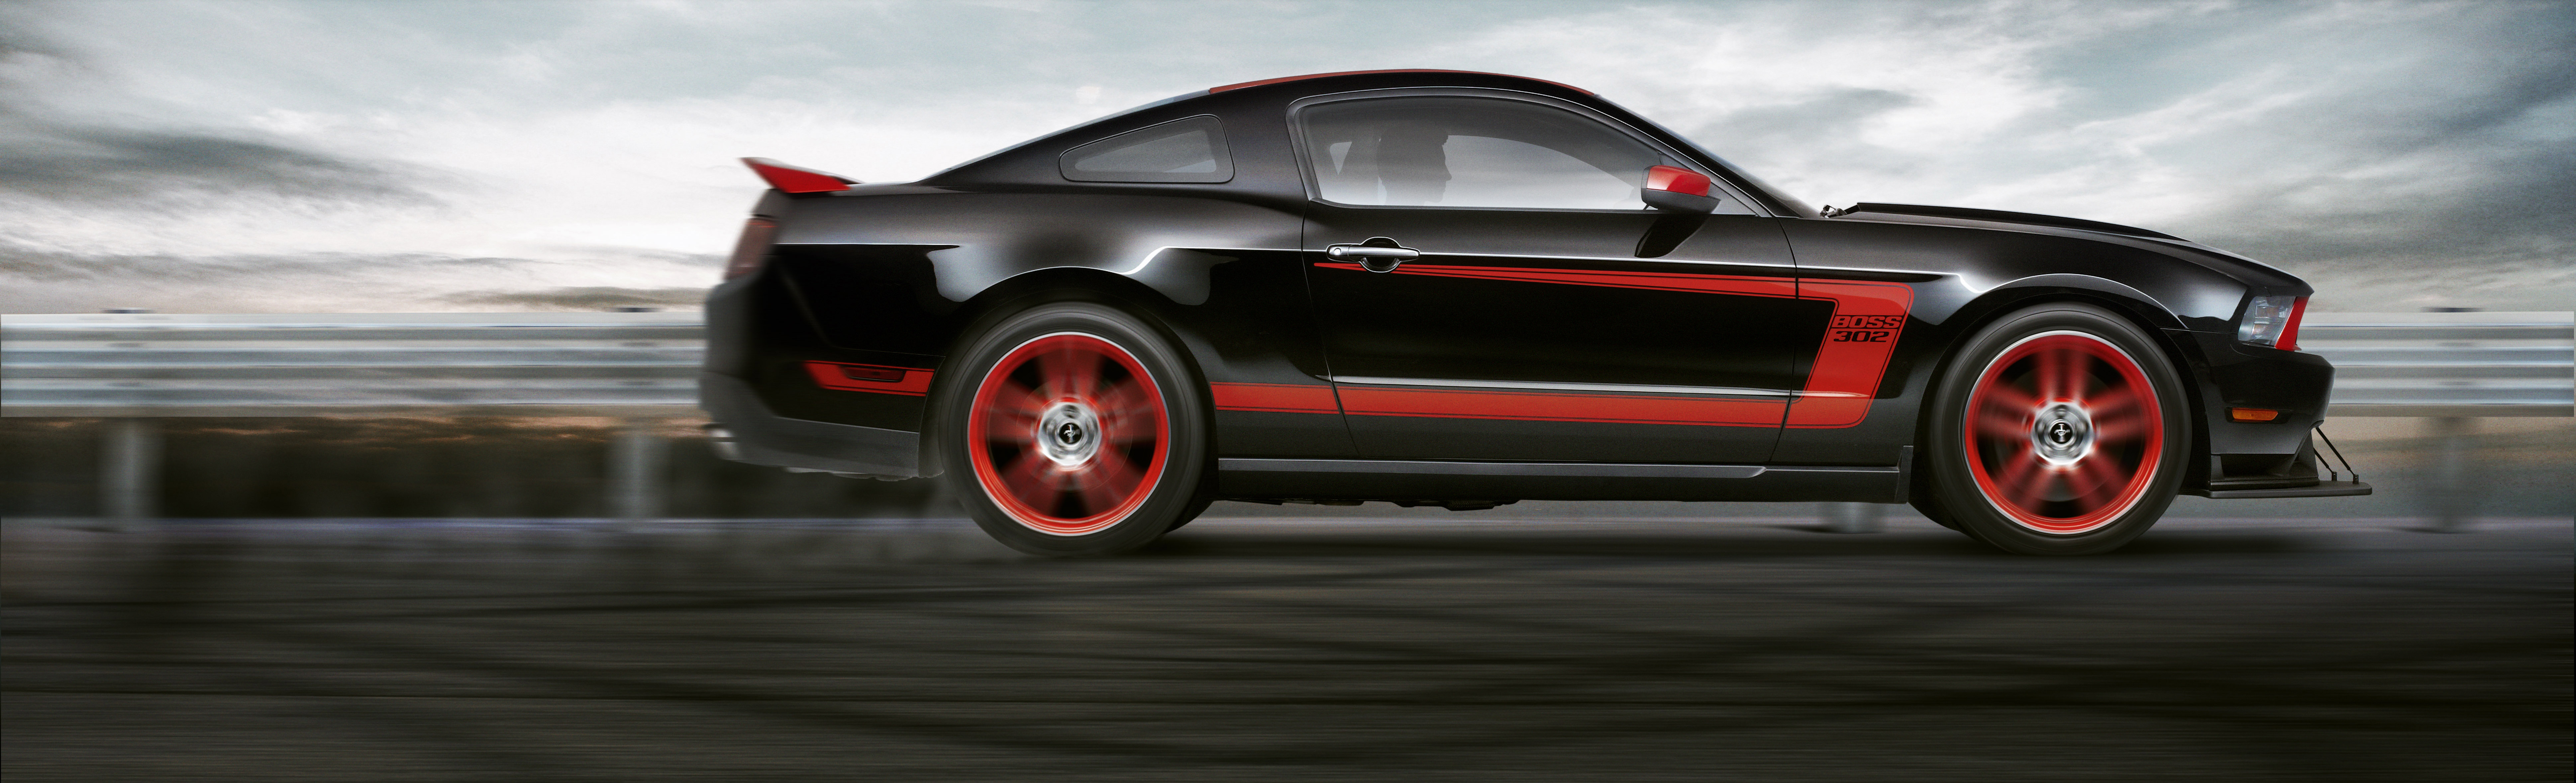 Drivingenthusiast 2012 Mustang Boss 302 Hd Images Page 5